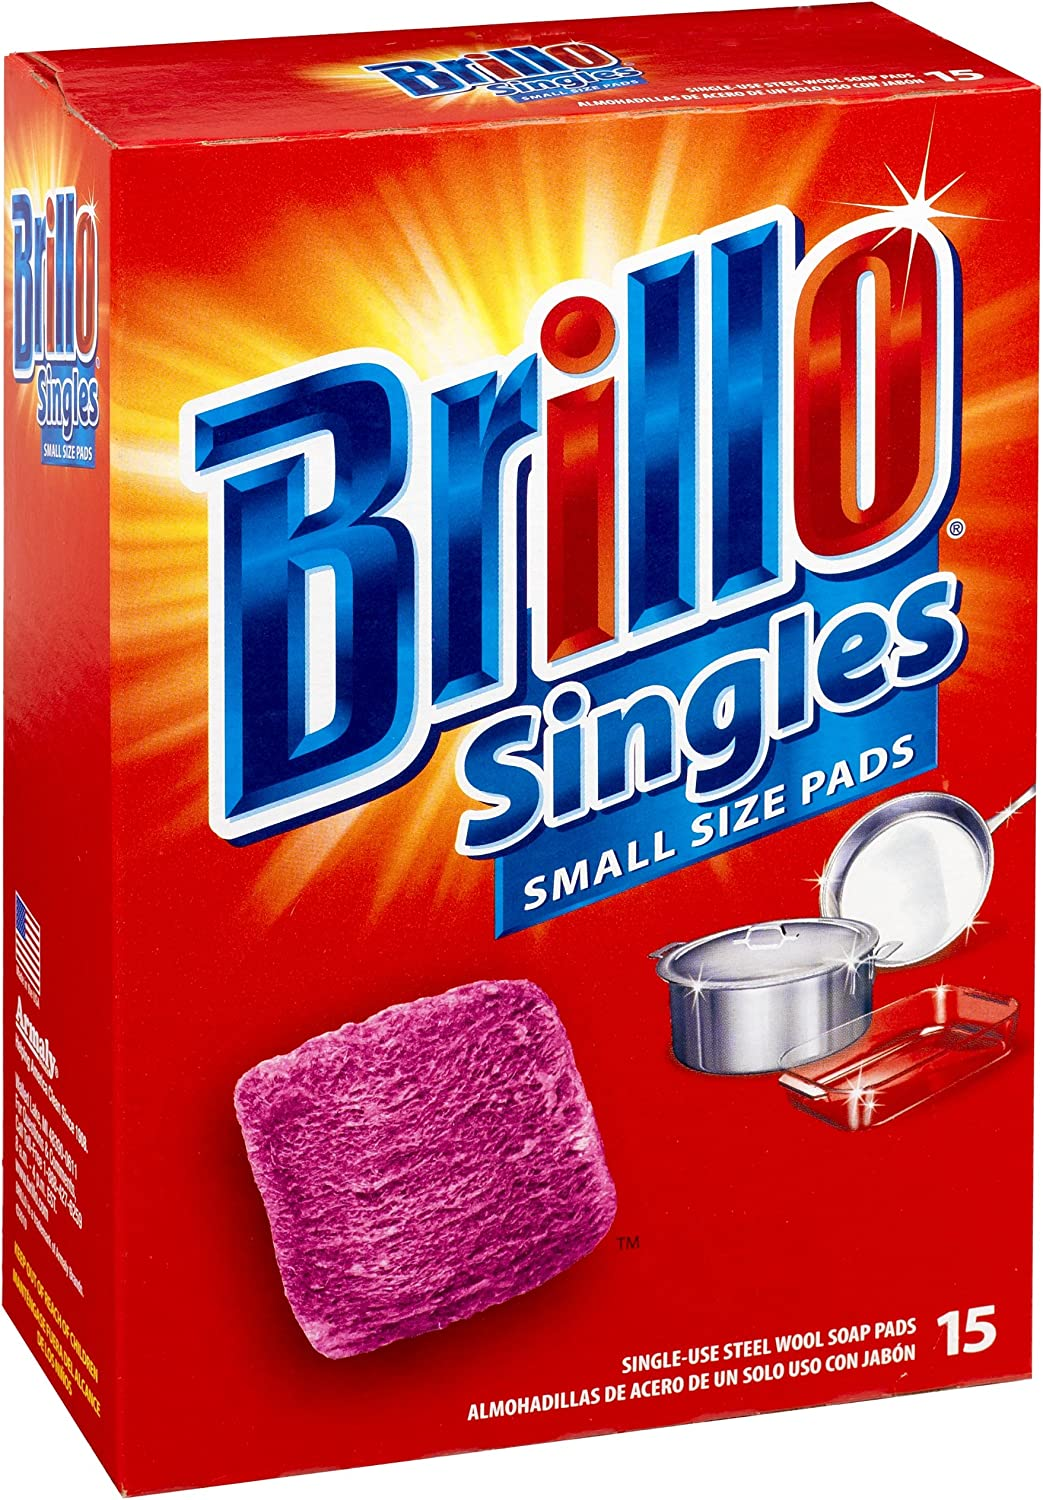 Brillo Steel Wool Soap Pads Scent Red 15-Co Memphis Mall Outlet ☆ Free Shipping Original Singles